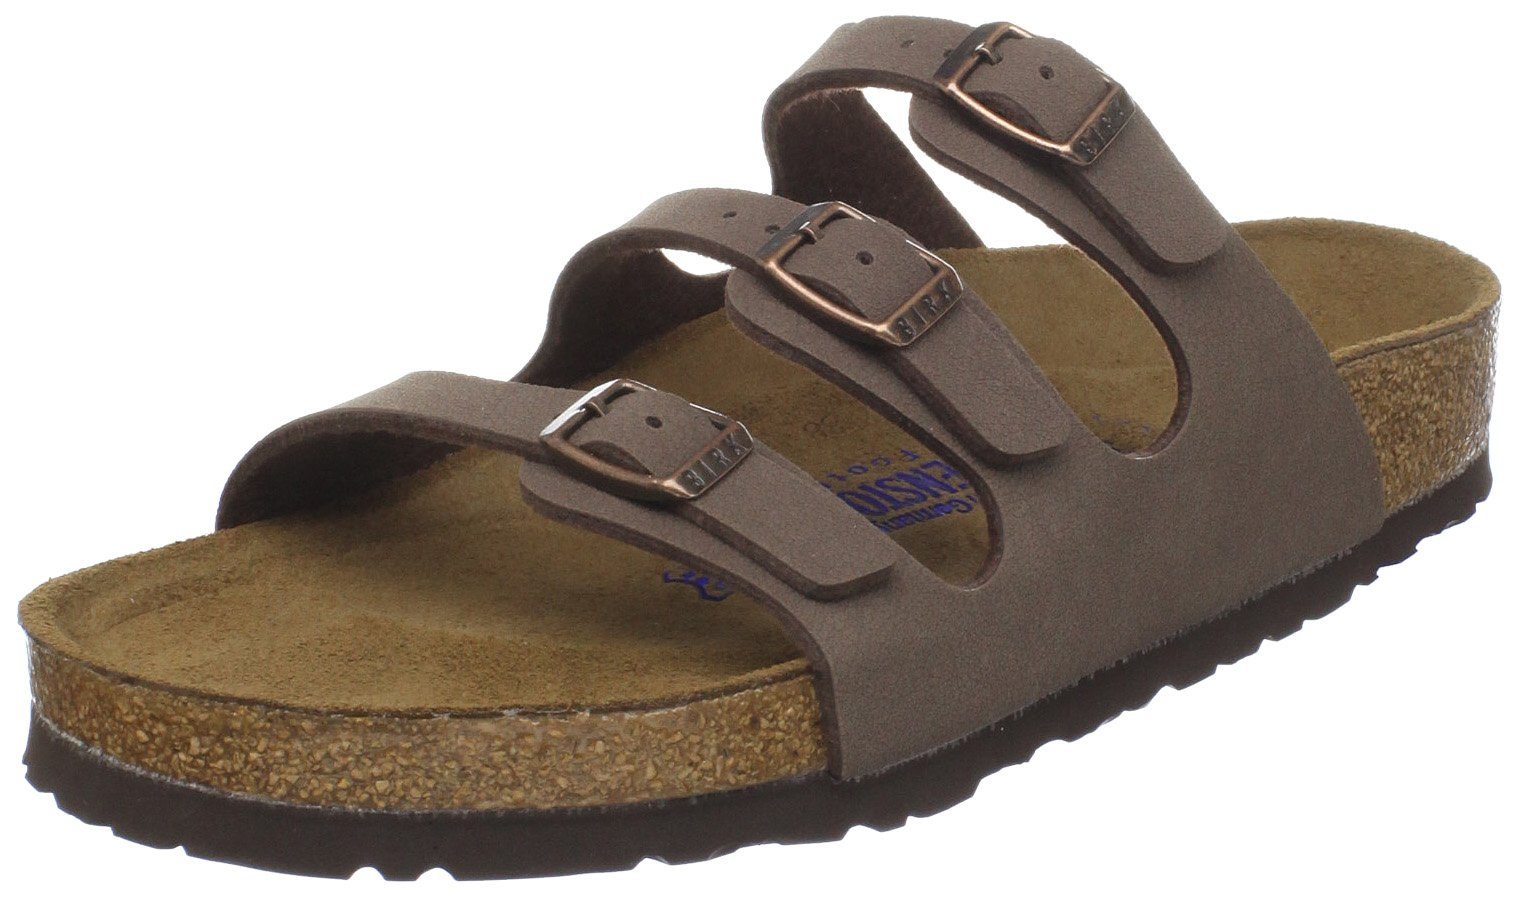 95b16a08f59a Galleon - Birkenstock Women s Florida Soft Footbed Mocha Birkibuc Sandal 38  R (US Women s 7-7.5)